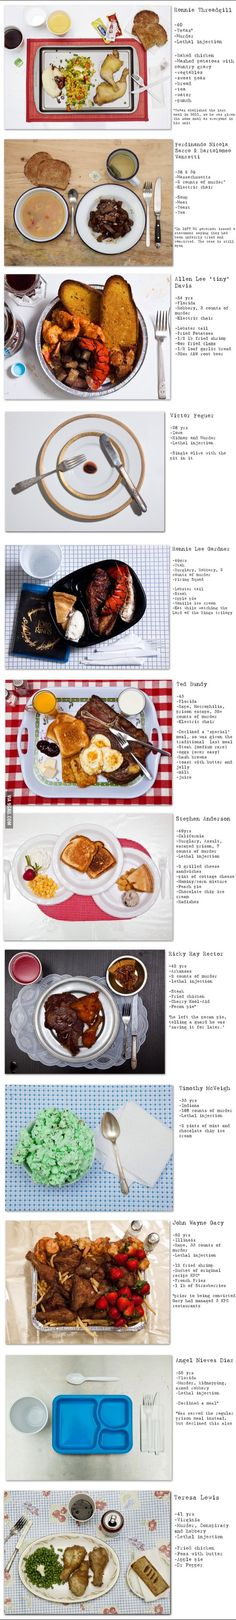 famous death row inmates last meals